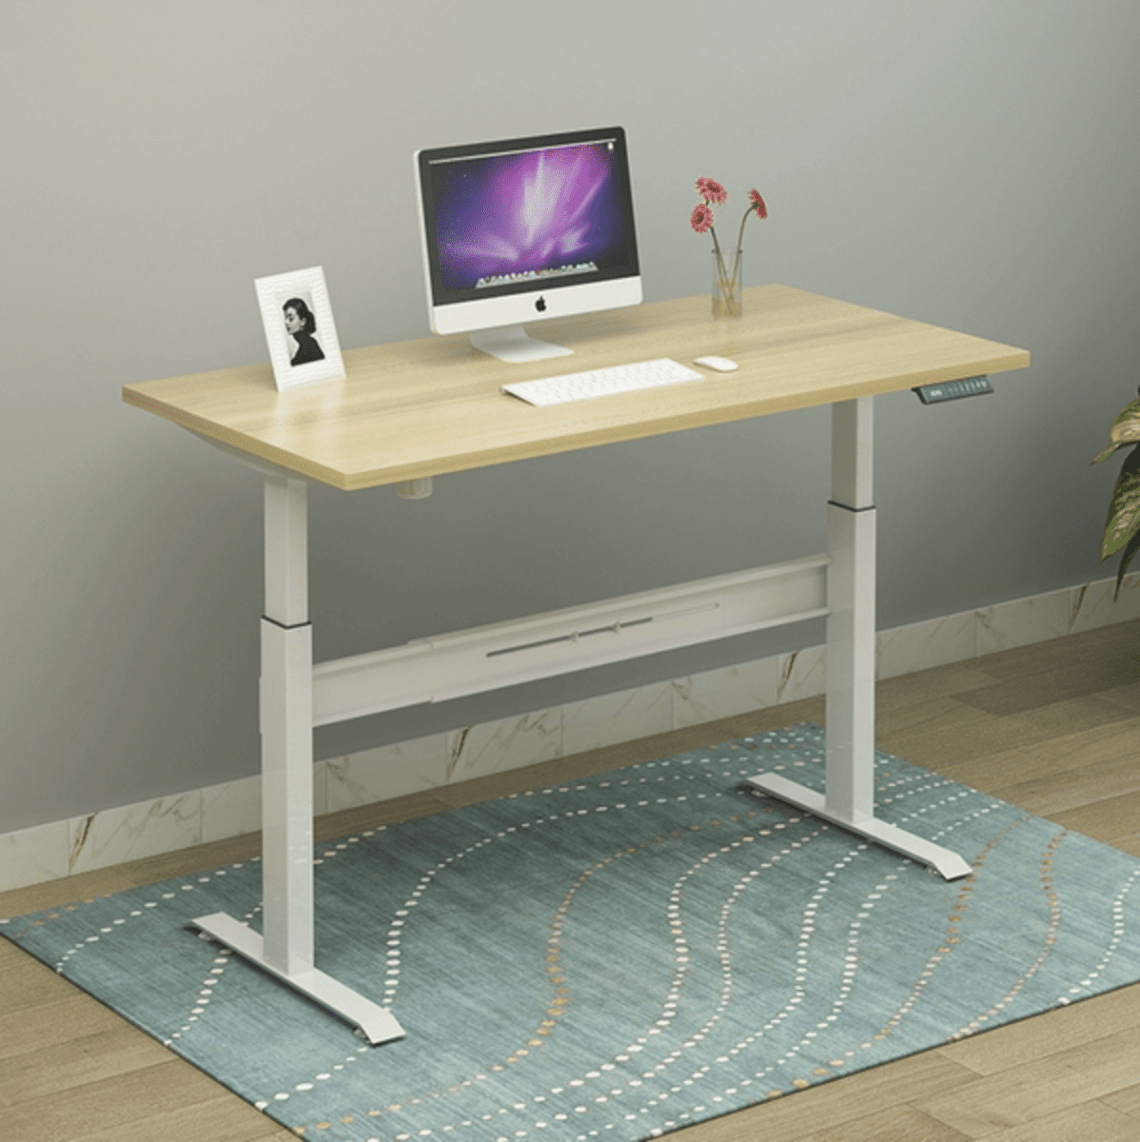 Electric-lift Smart Desk